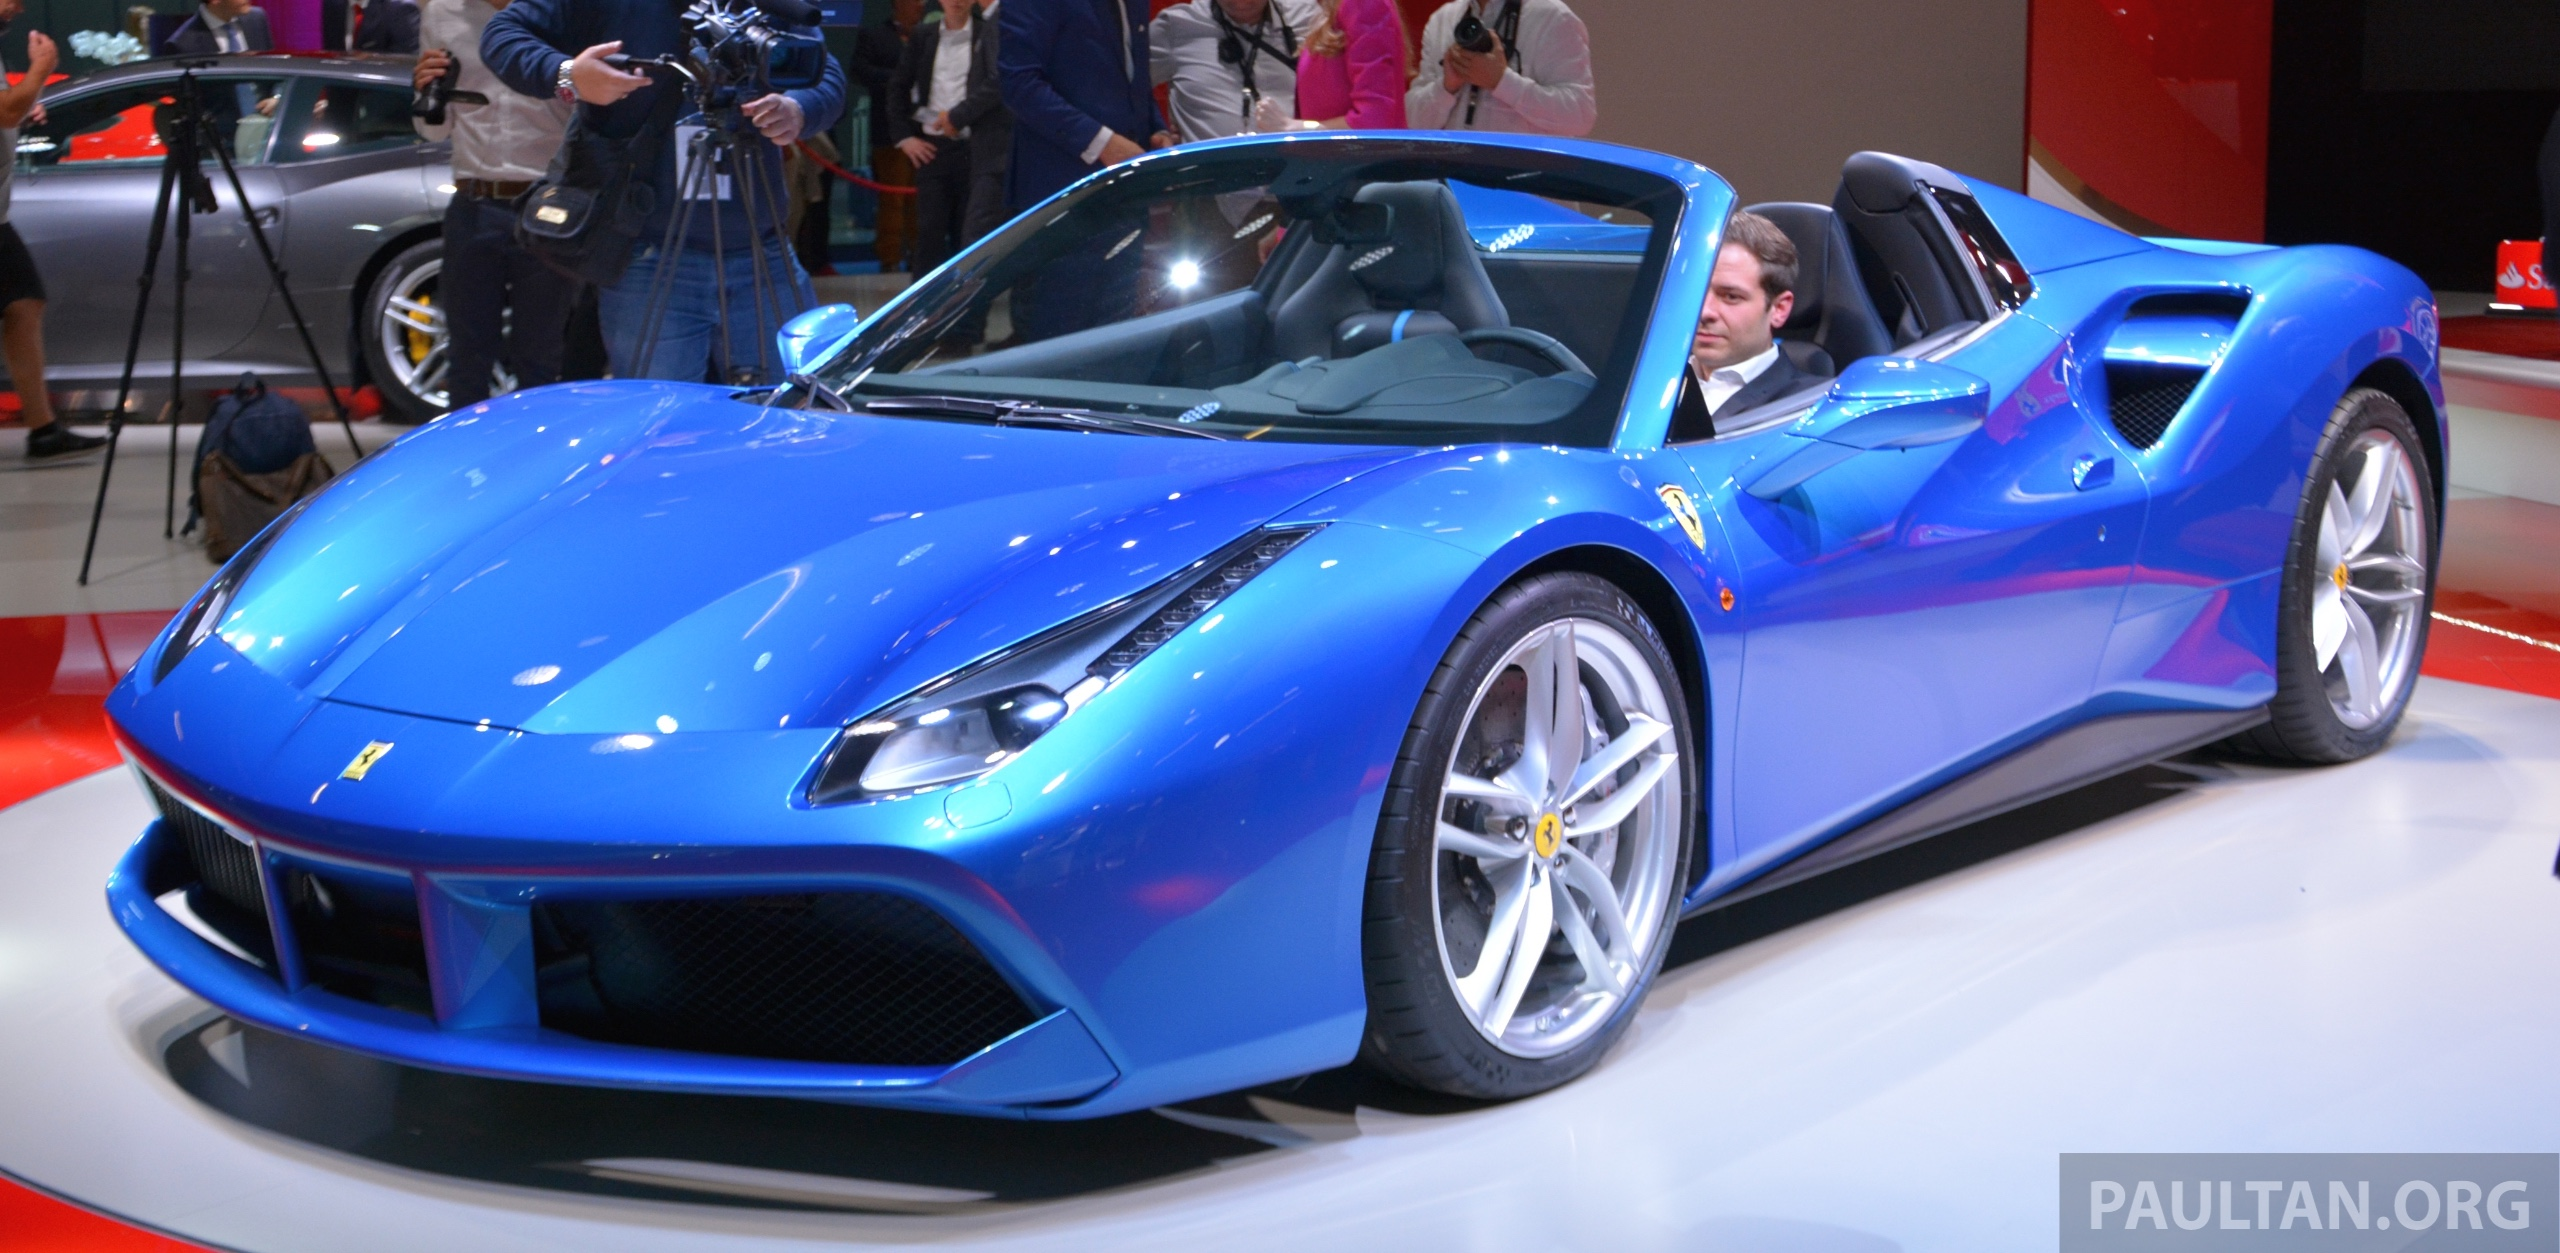 How Much Does It Cost >> Frankfurt 2015: Ferrari 488 Spider makes public debut Paul Tan - Image 381449